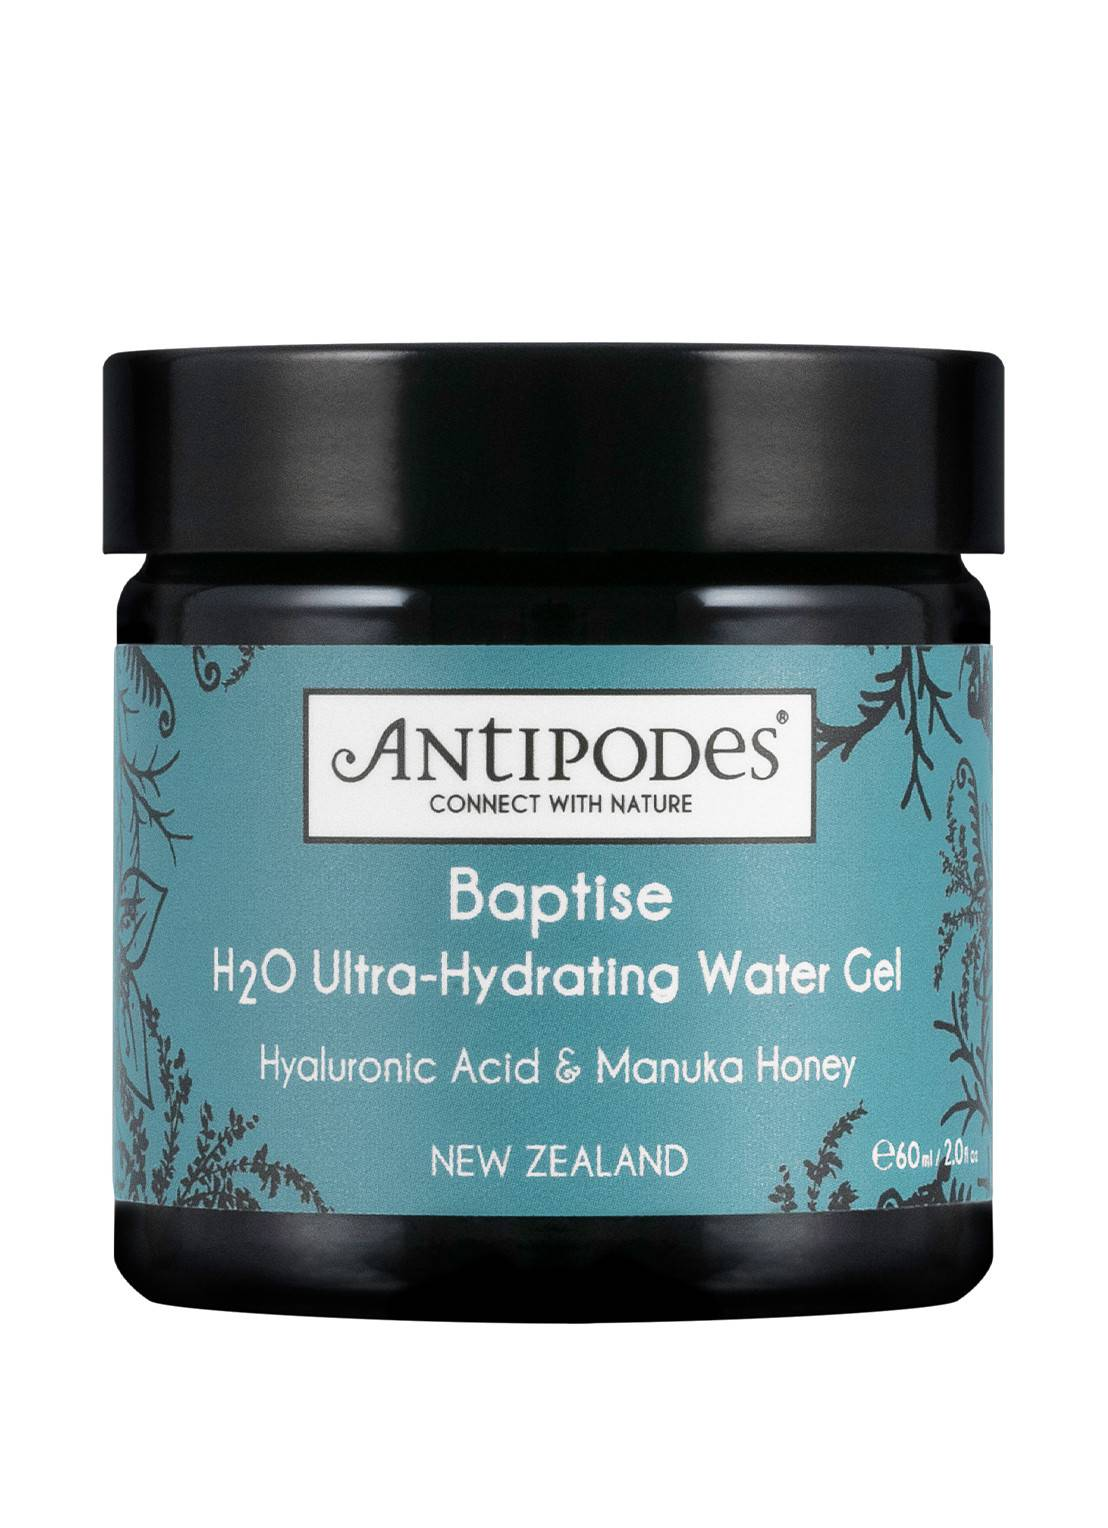 antipodes Baptise H2O Ultra-Hydrating Water Gel - crème gel jour & nuit -